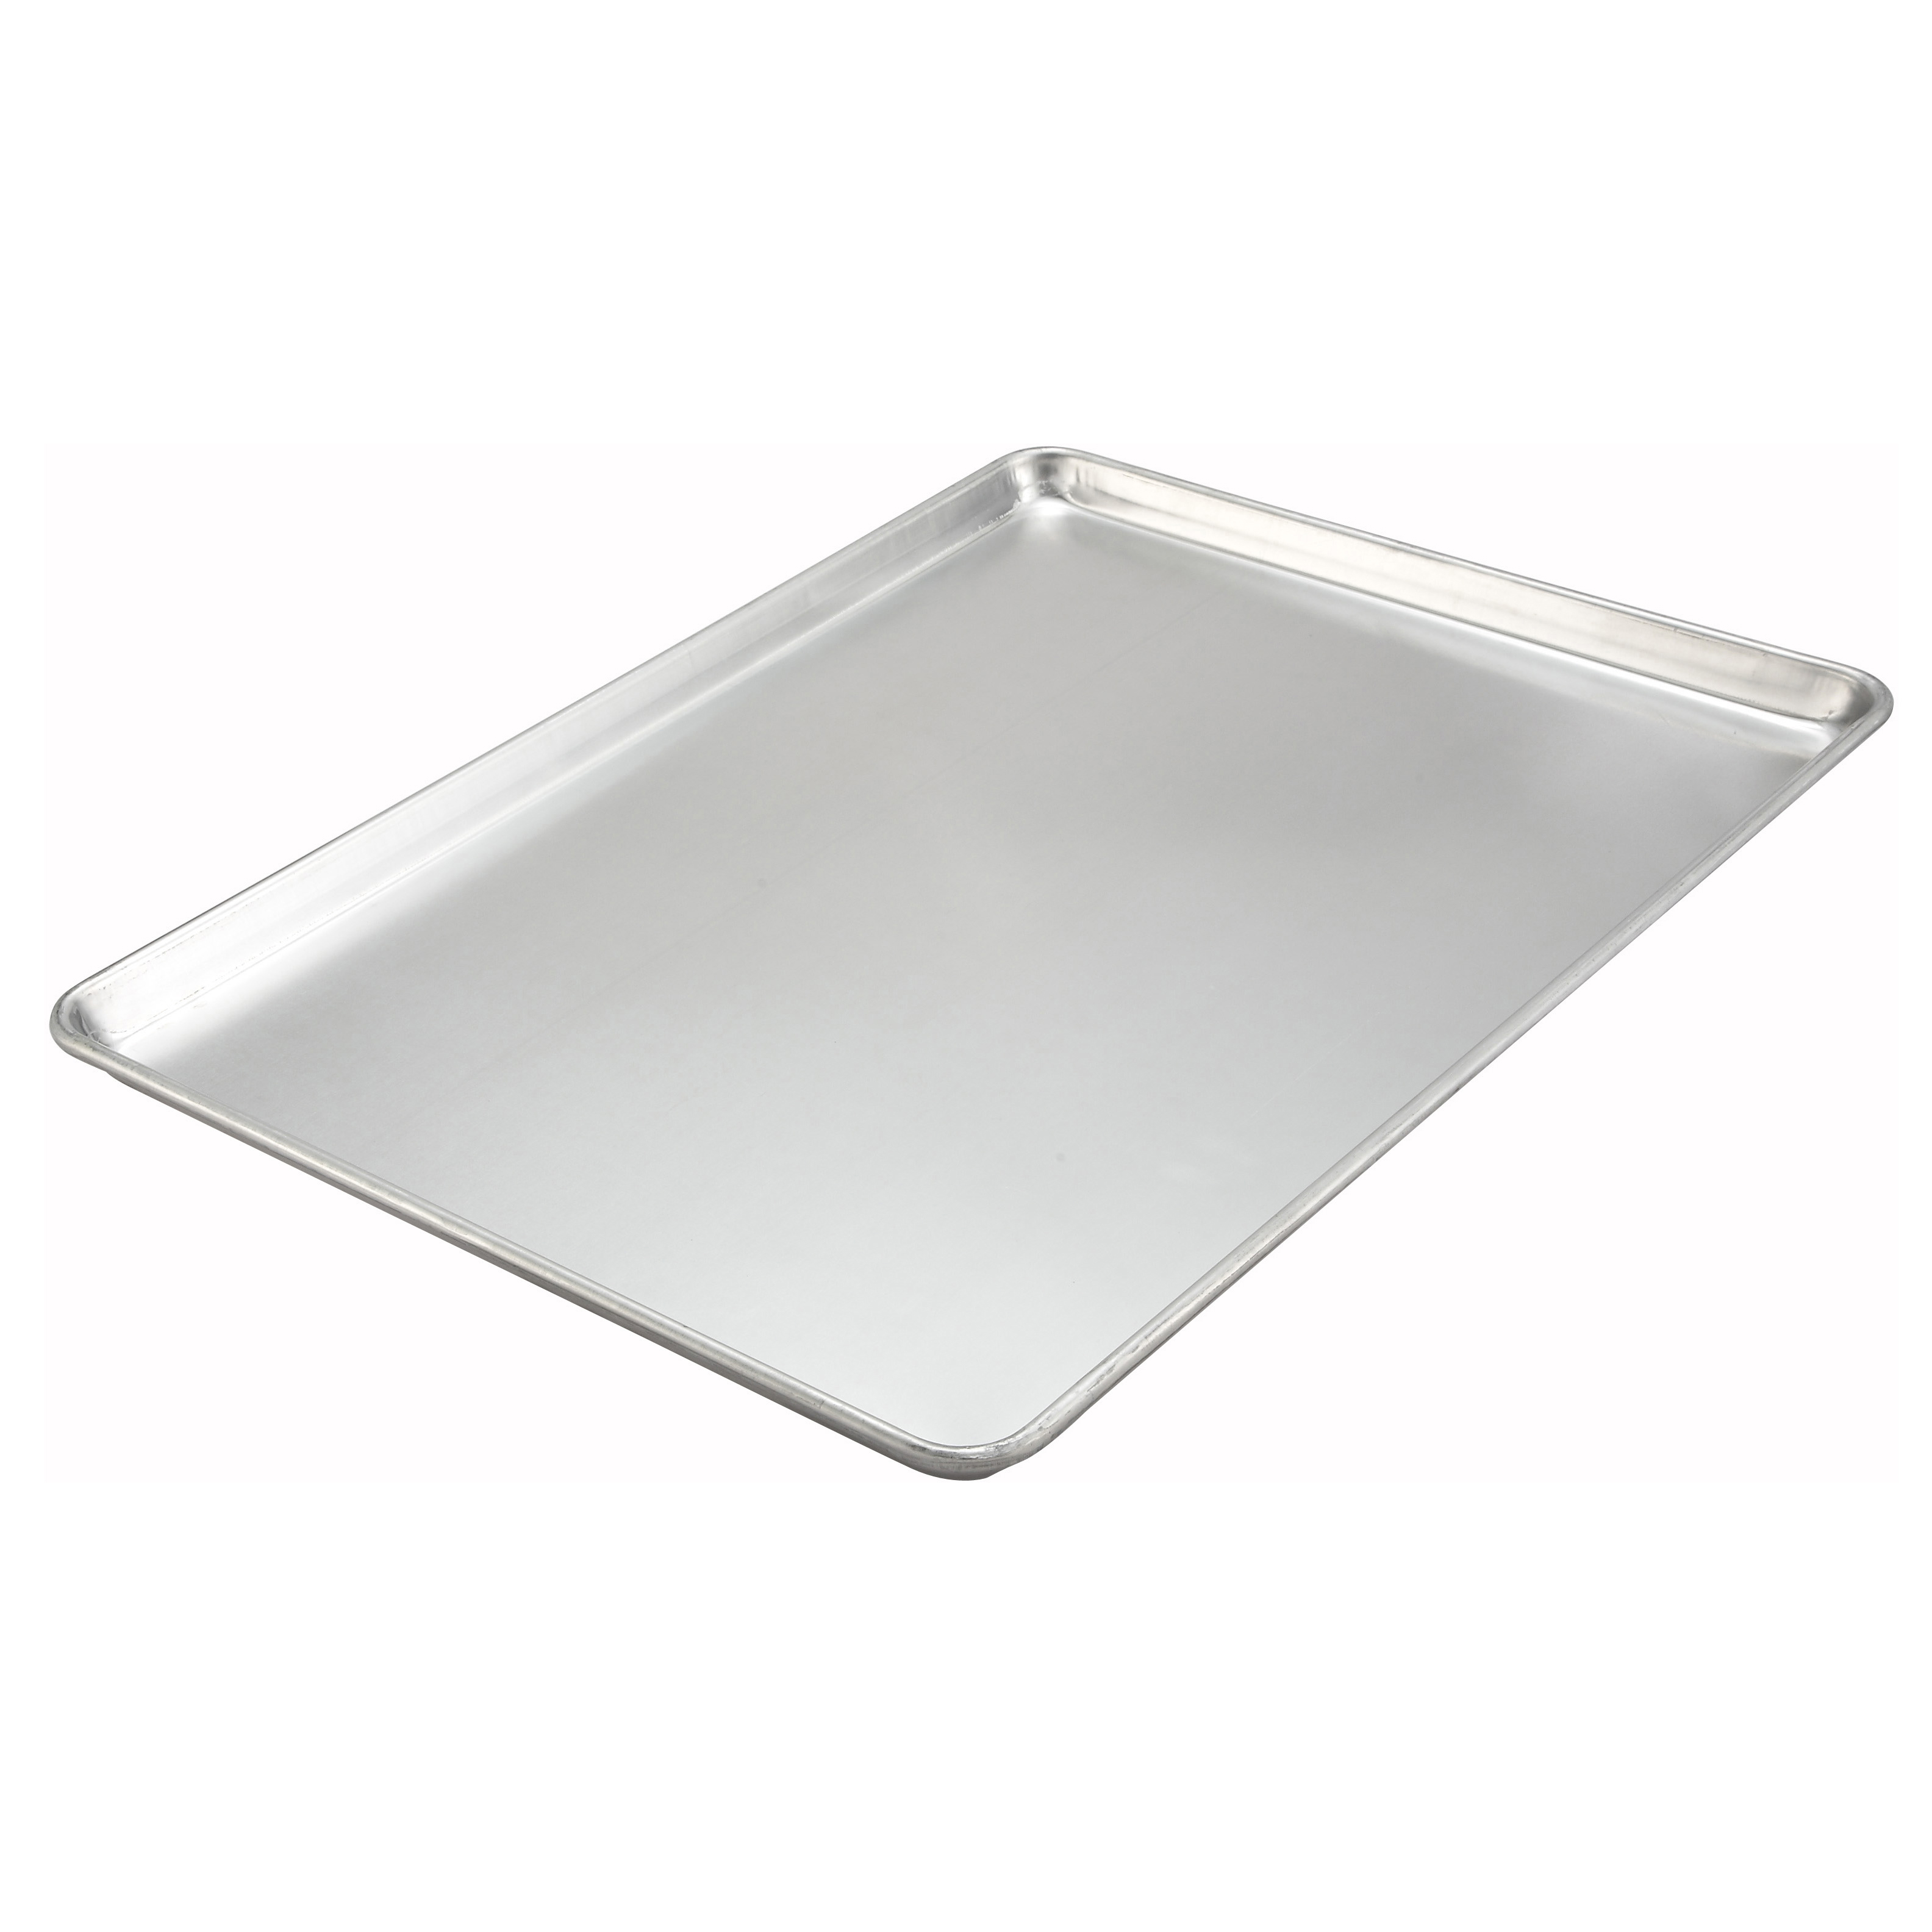 Winco ALXP-2216H bun / sheet pan